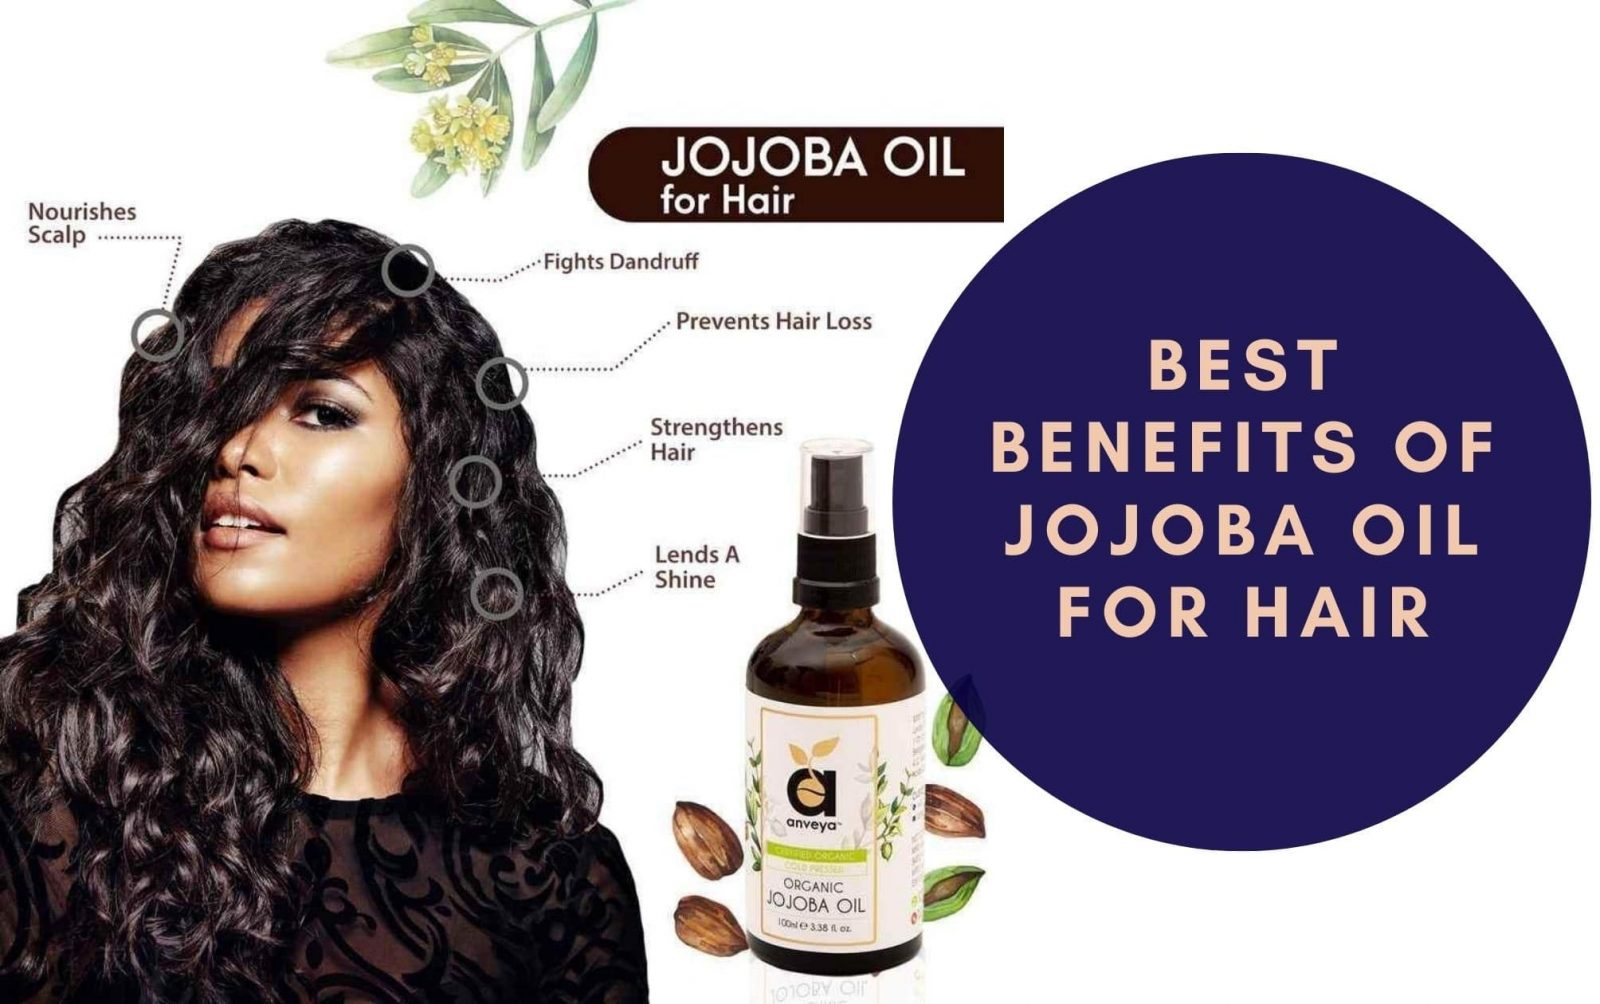 Best Benefits of Jojoba Oil for Hair